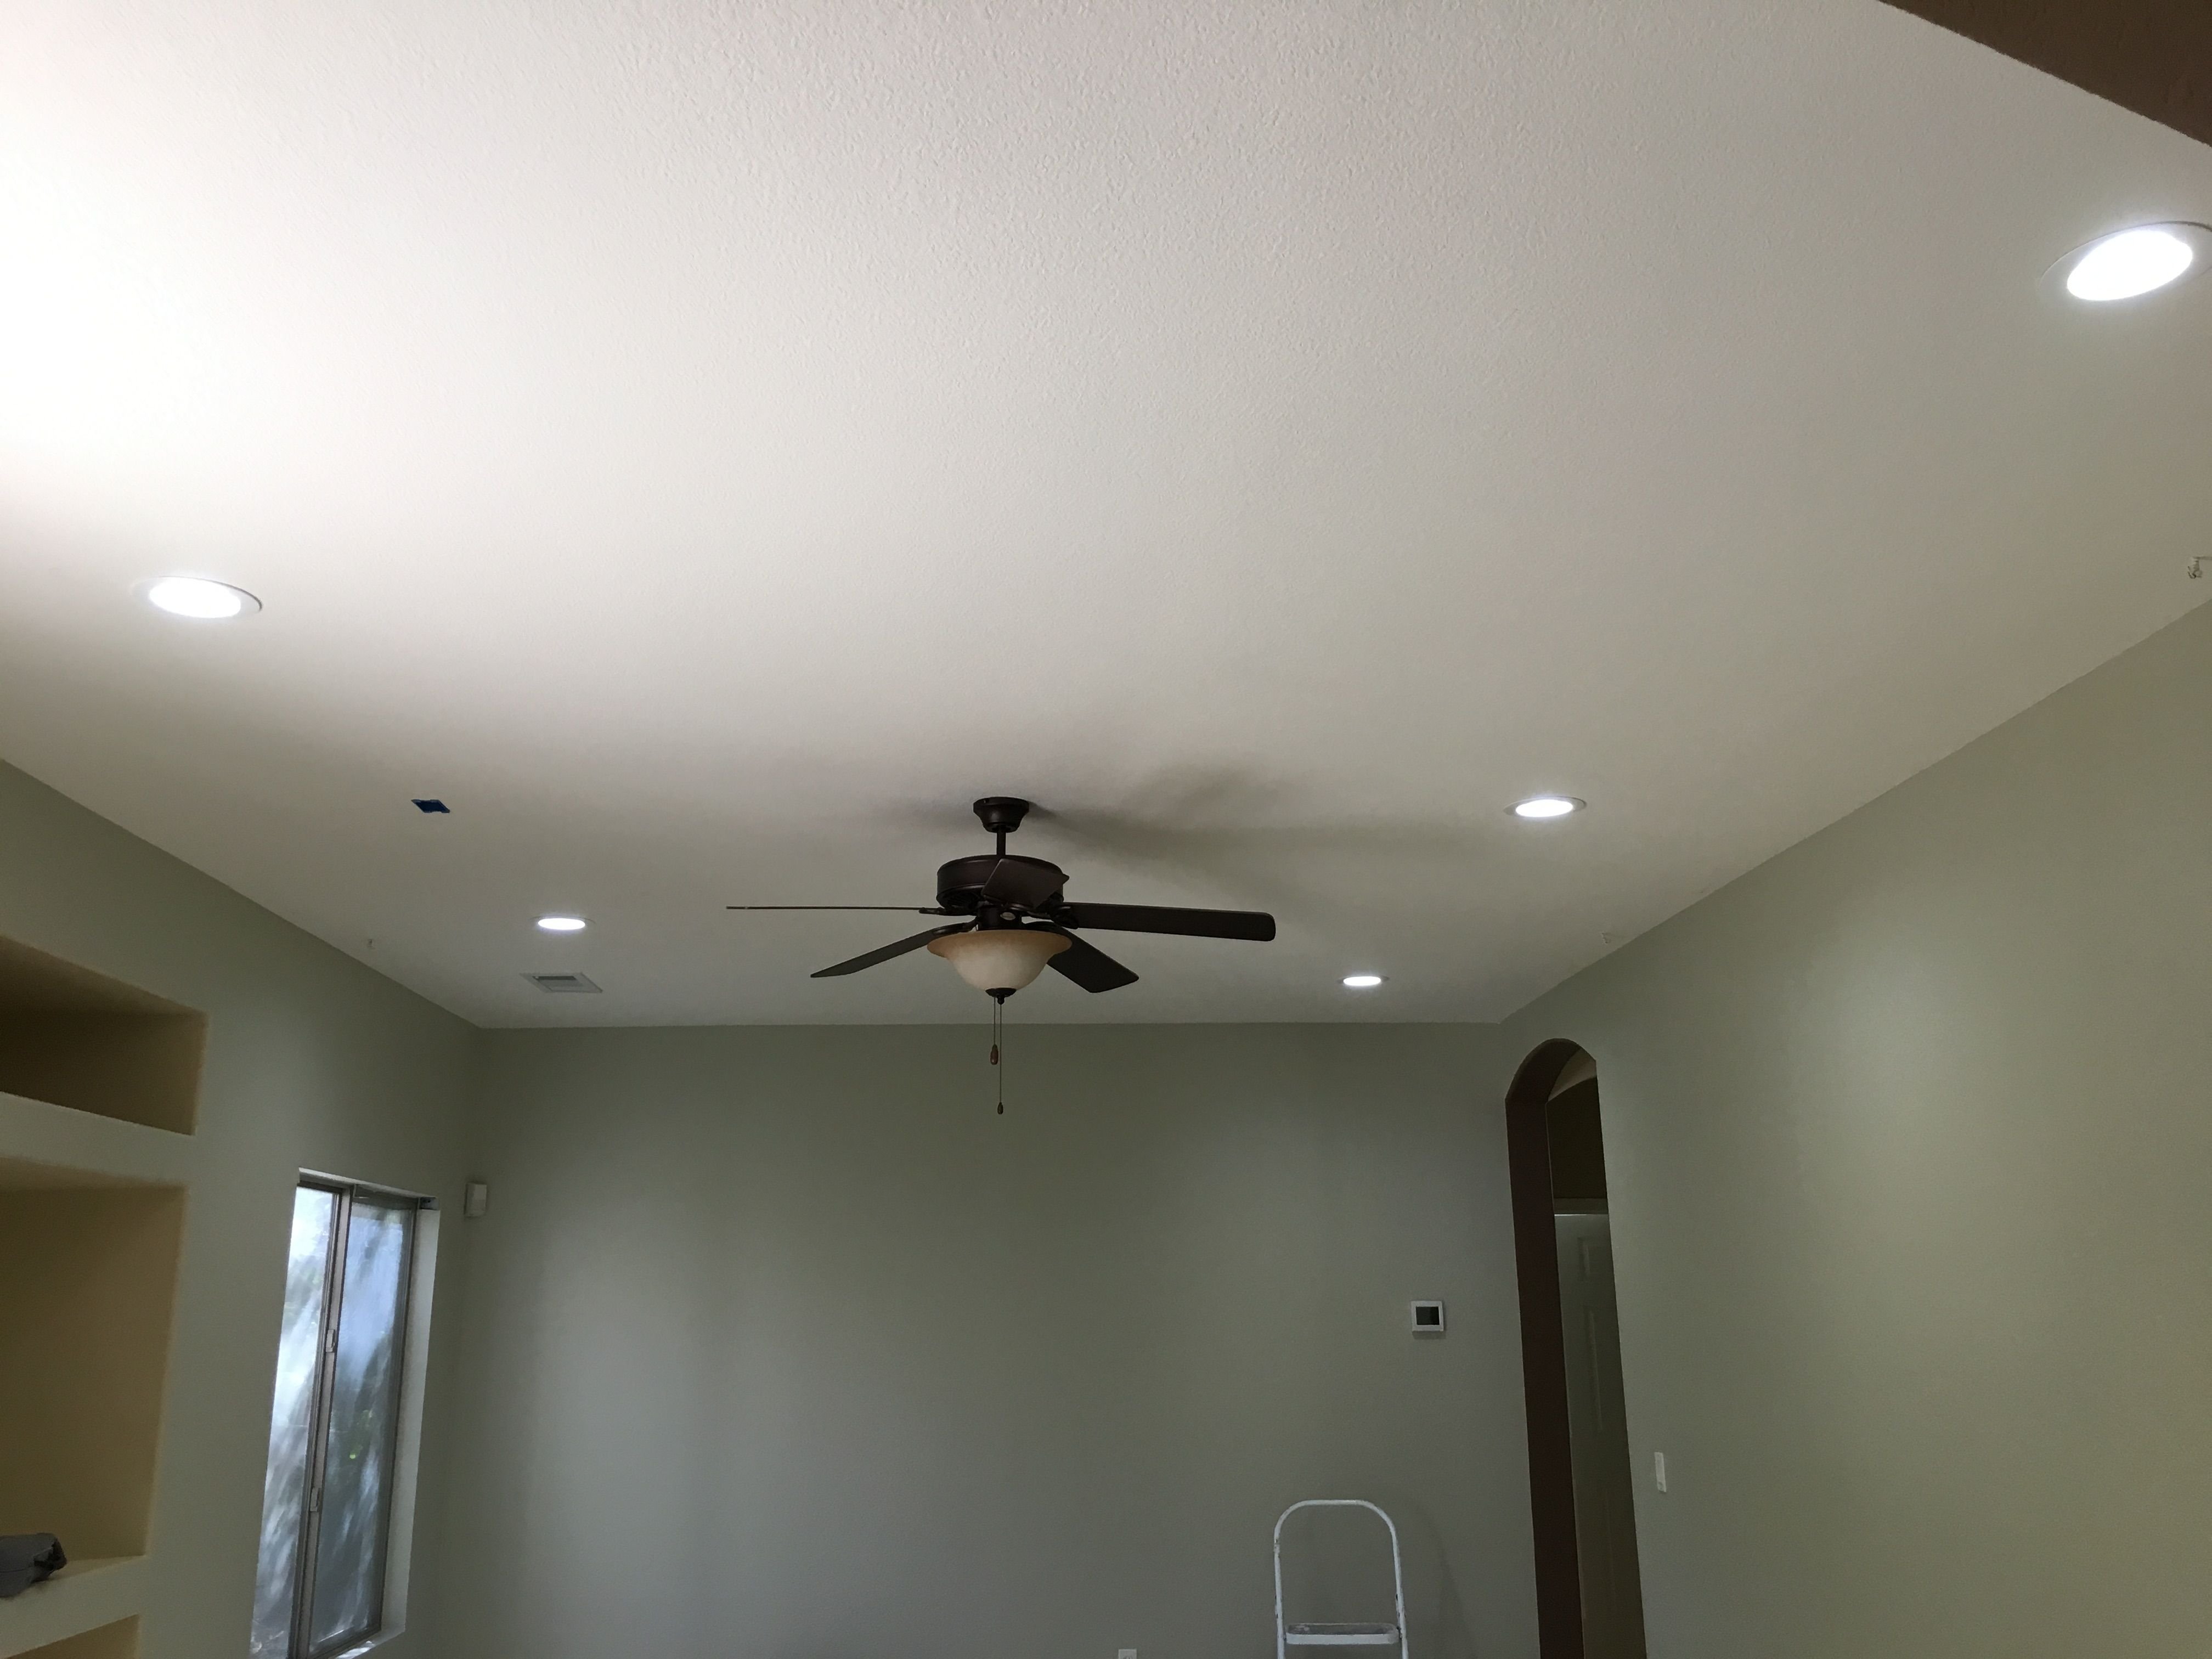 5 Led S In Family Room With A Wired Fixture Box For Future Track Lighting Recessedlighting Remodel Recessedlig Led Can Lights Recessed Lighting Can Lights